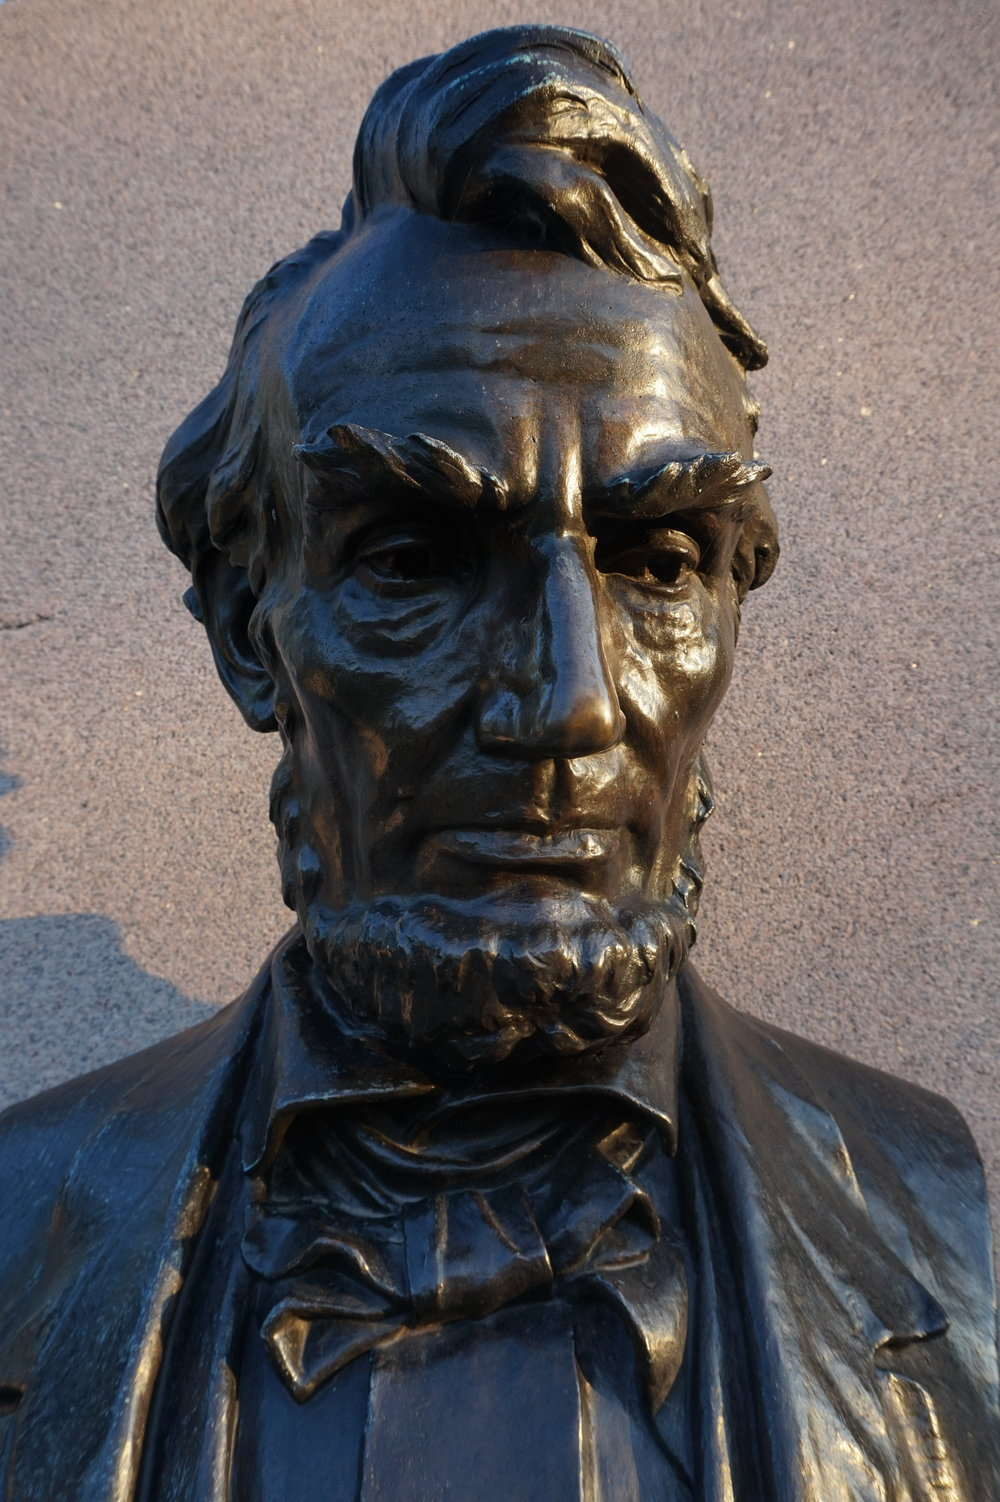 Bust of Abraham Lincoln at the Soldiers' National Cemetery, where he delivered the Gettysburg Address on November 19, 1863.